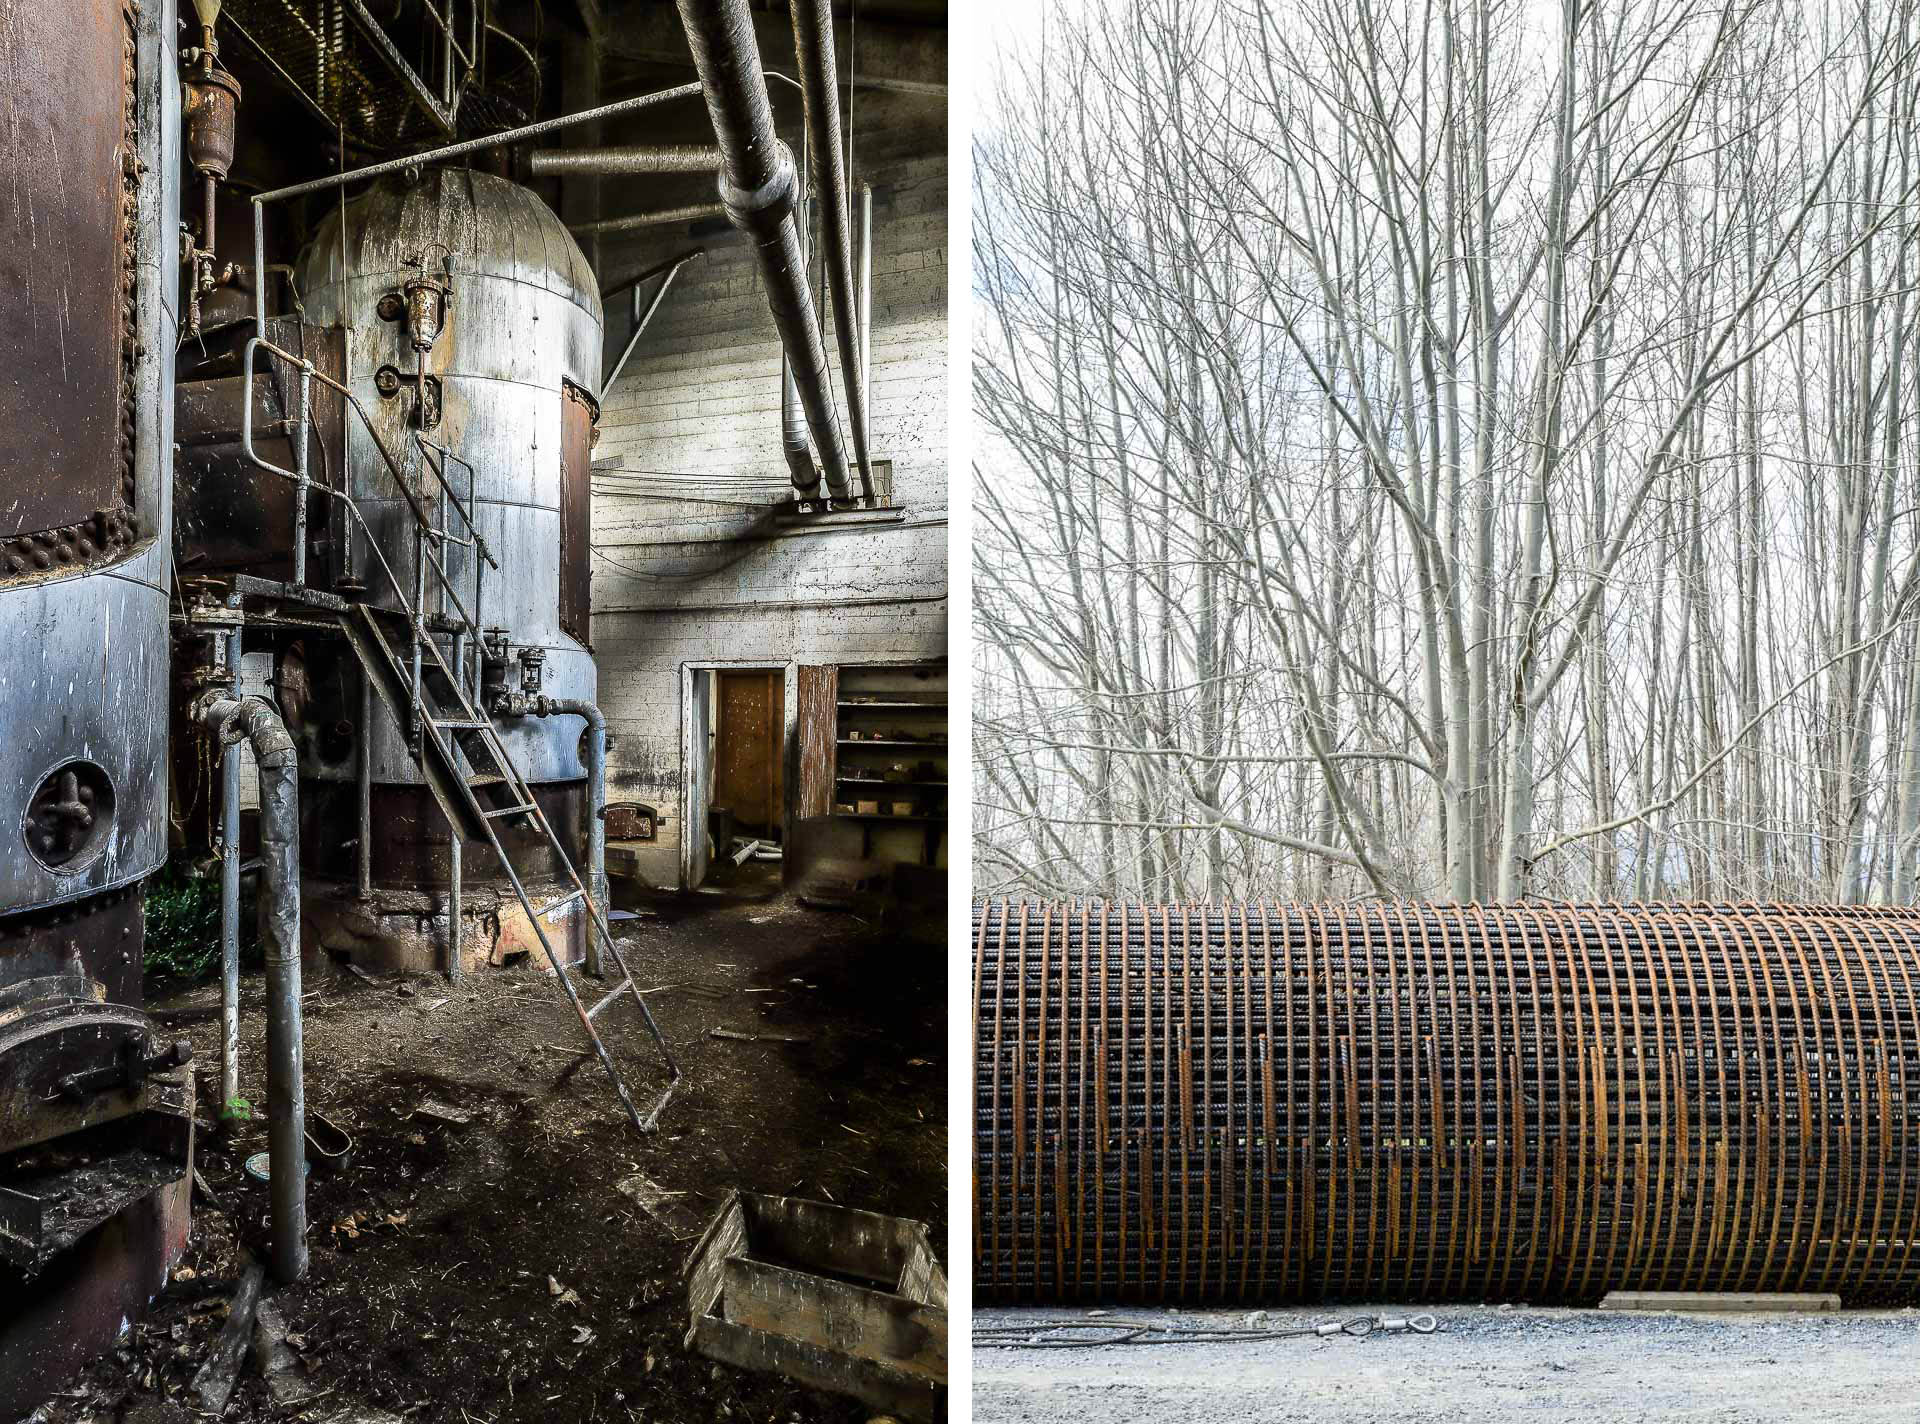 boilers-steel-cage-winter-trees.jpg